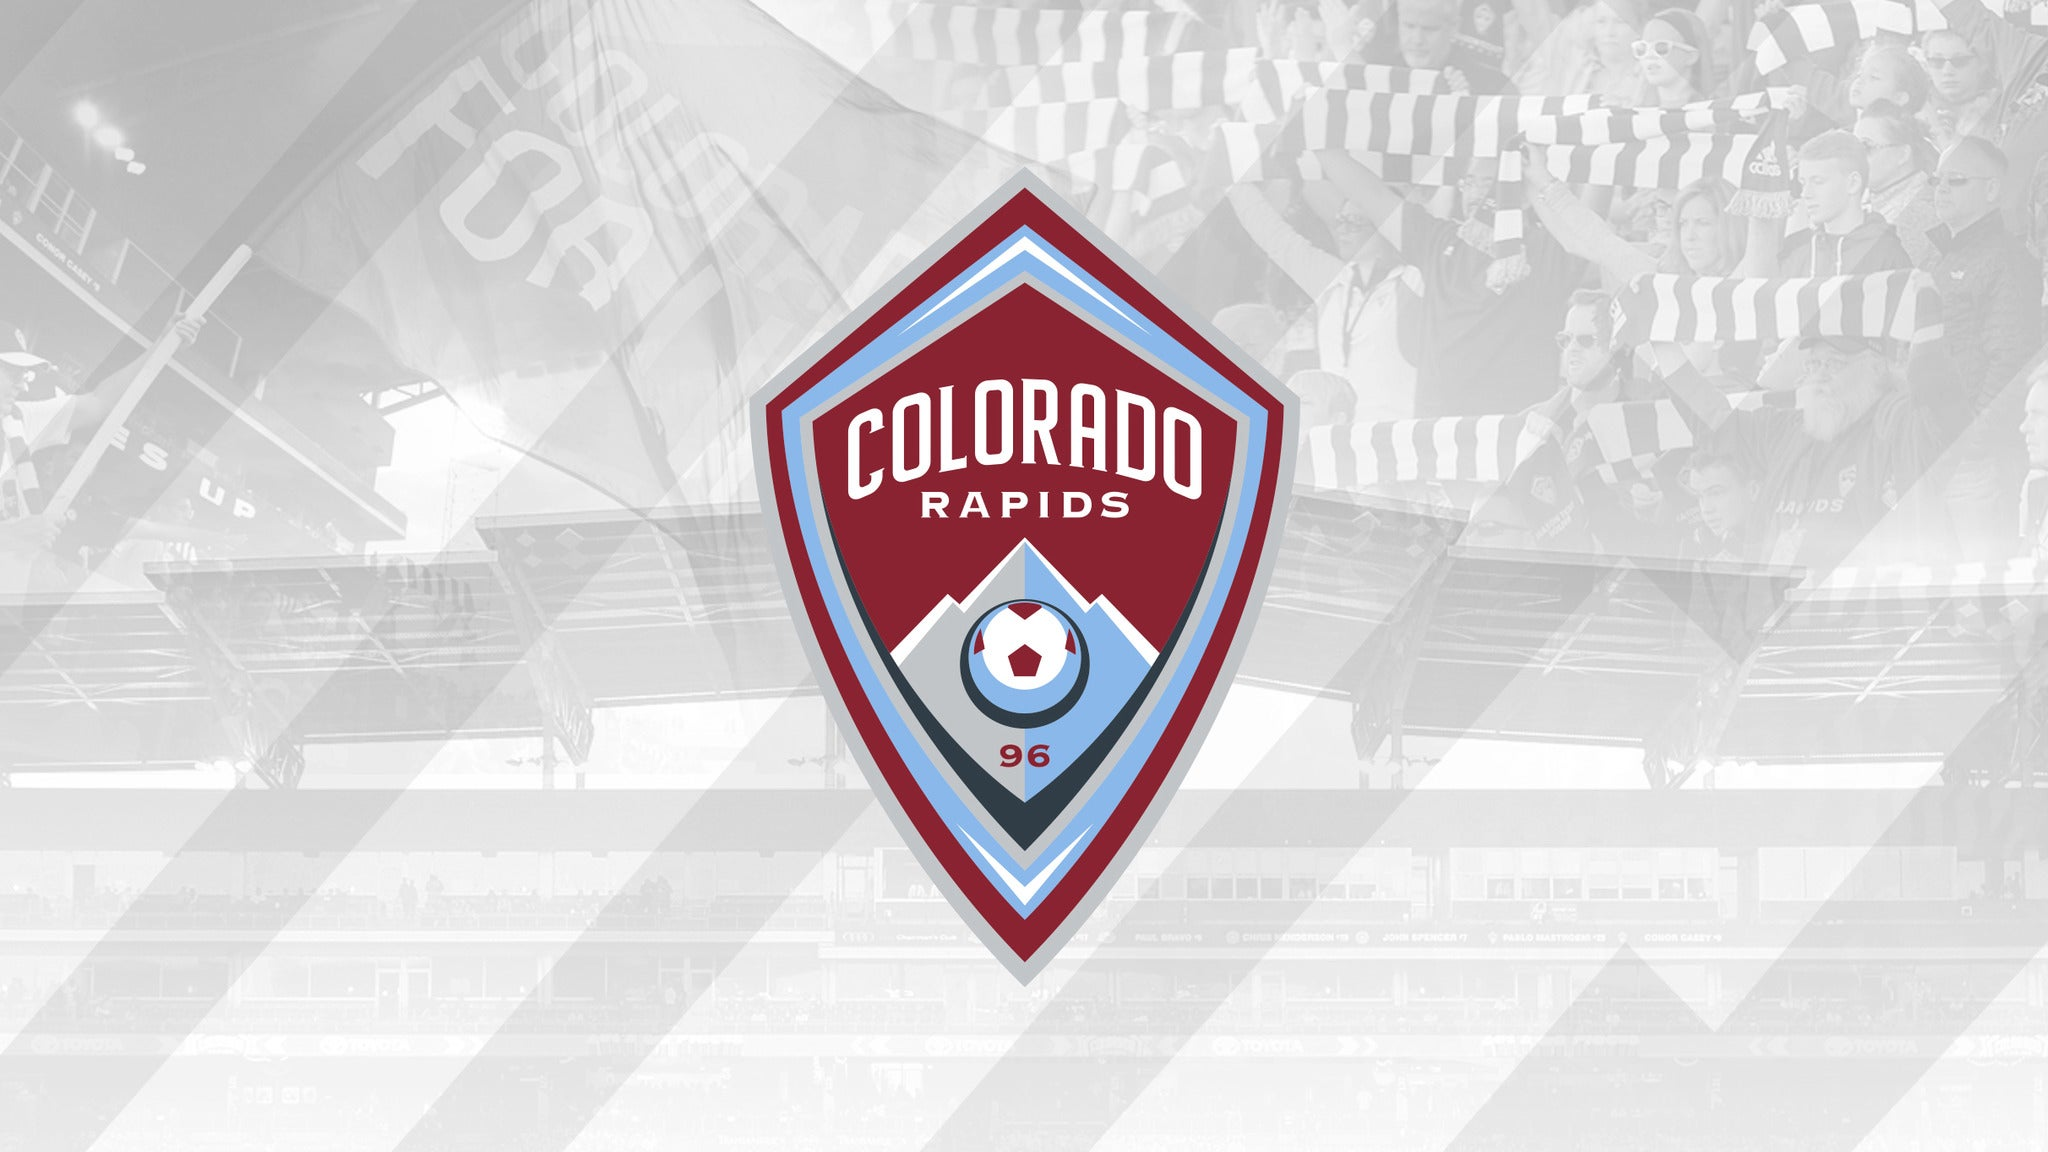 Colorado Rapids vs. New York Red Bulls